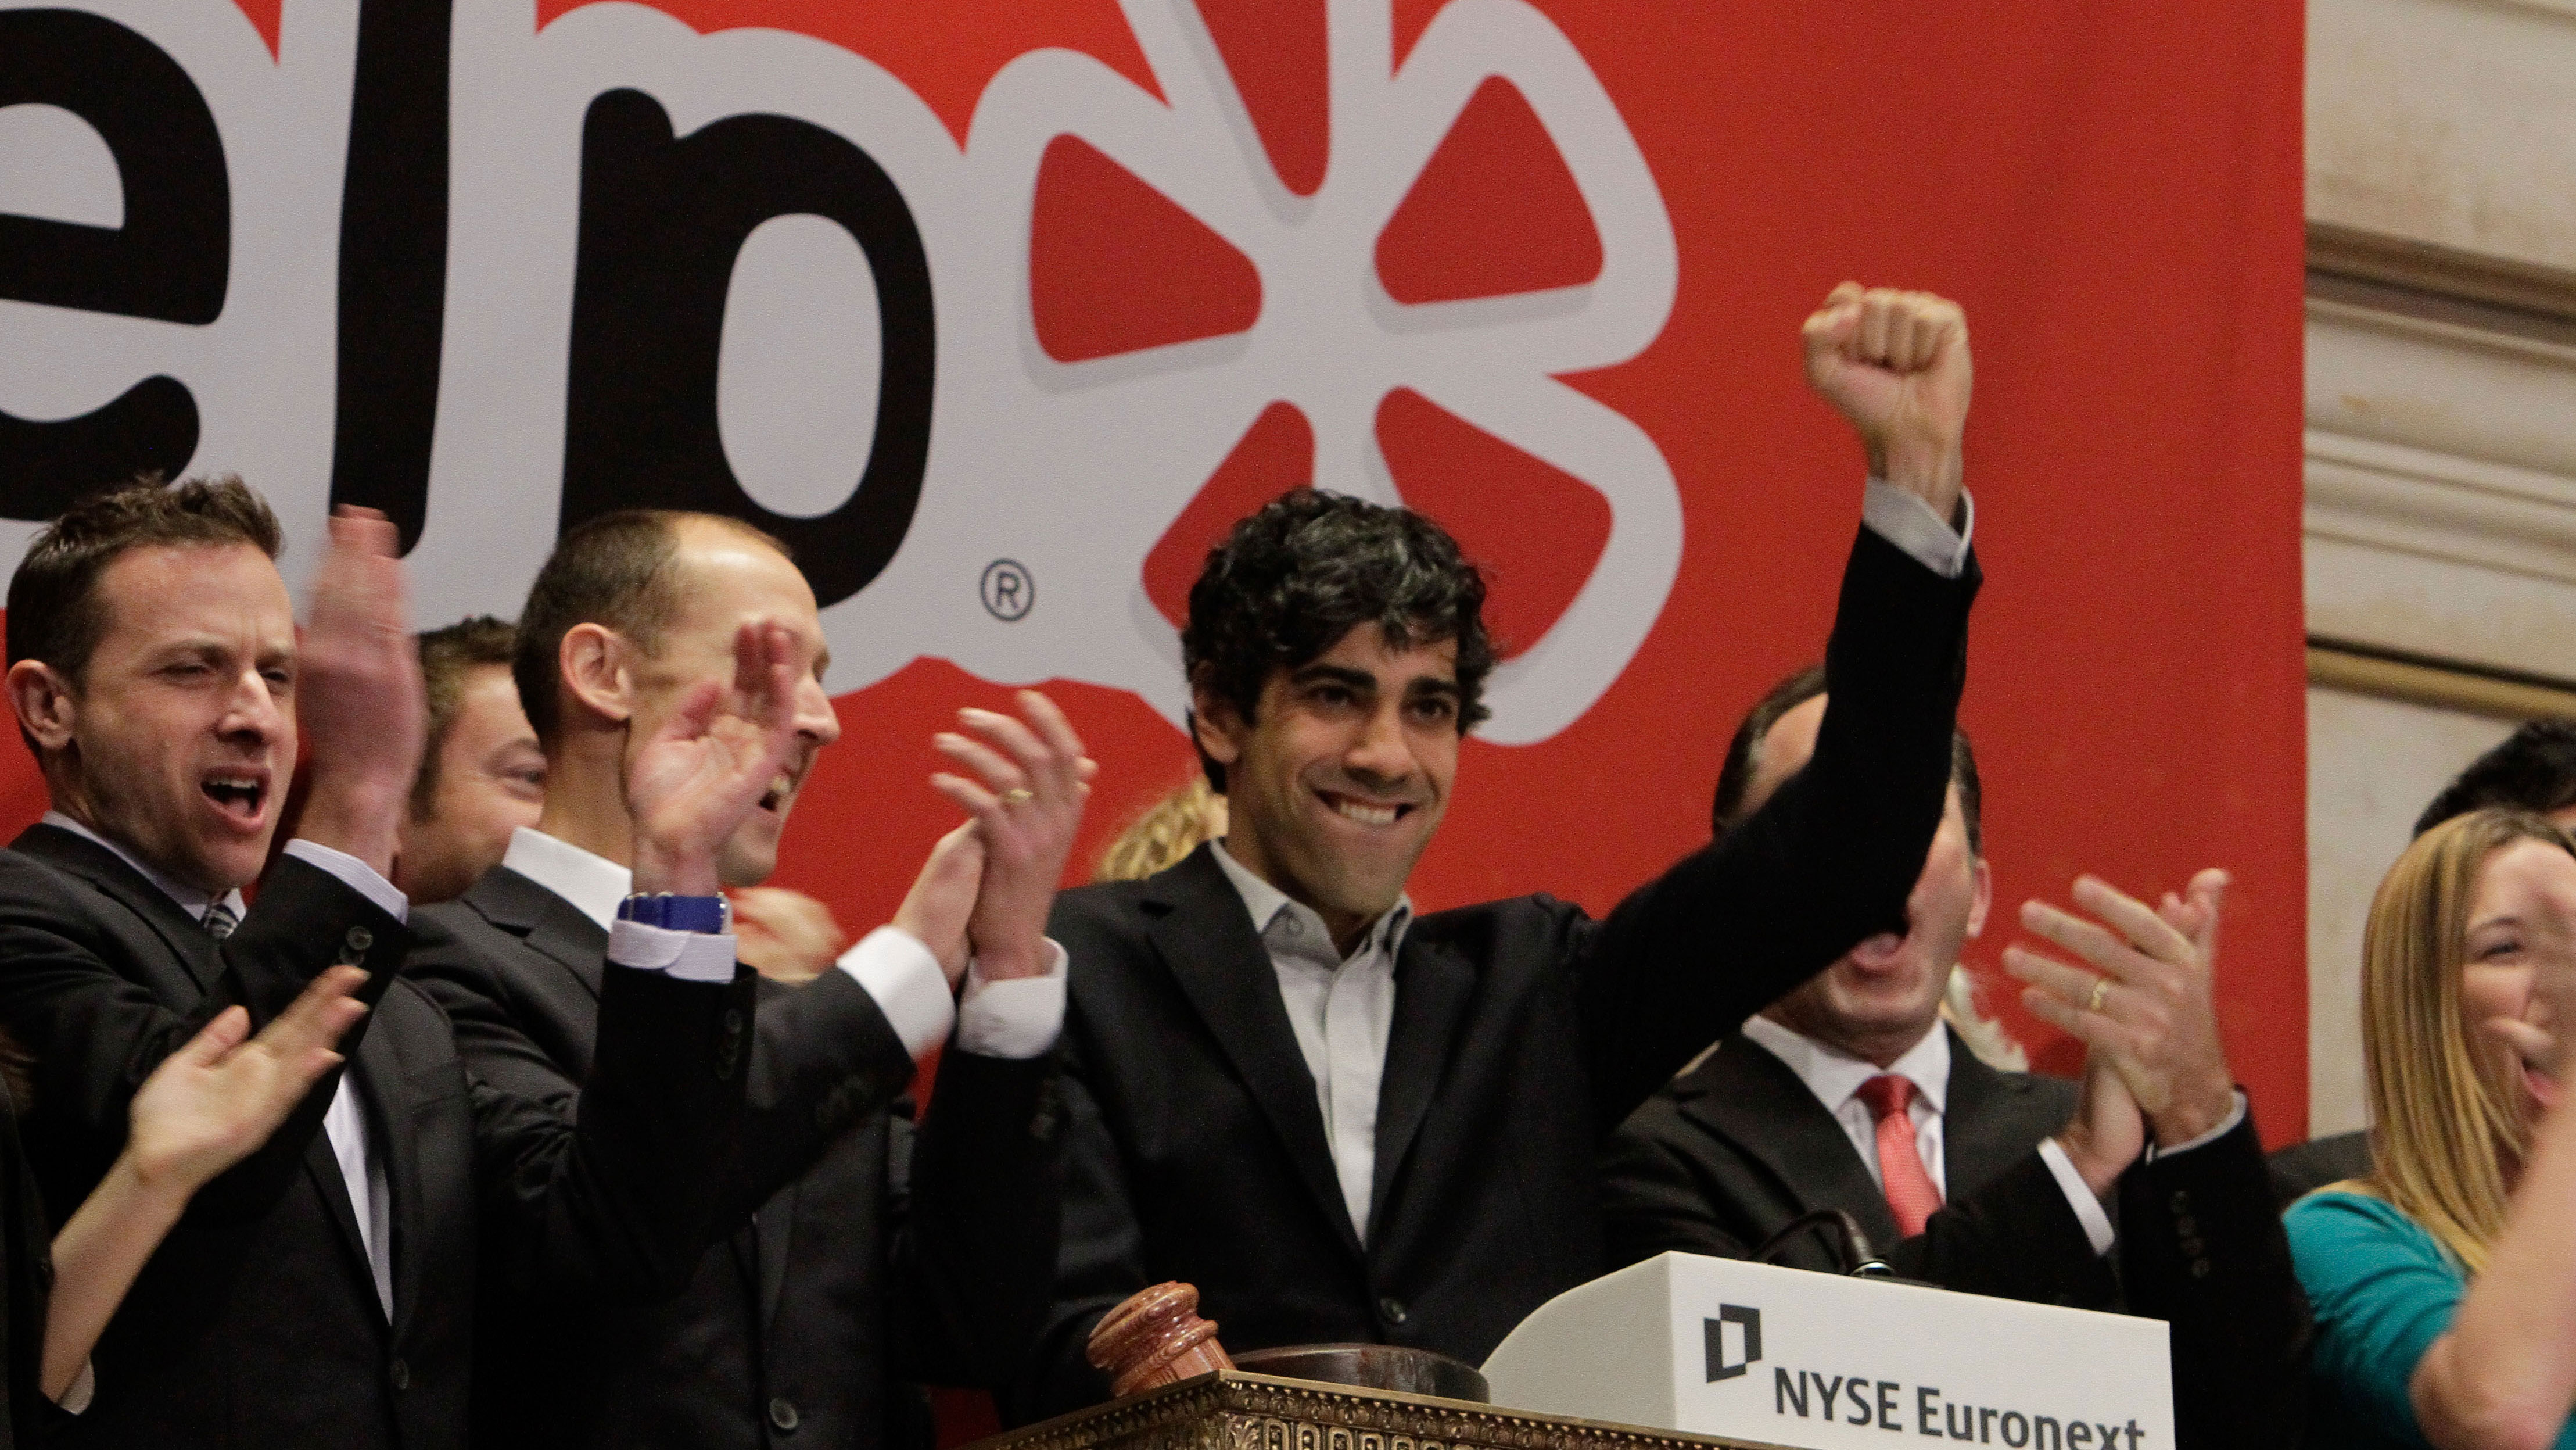 FILE - In this March 2, 2012 file photo, Jeremy Stoppelman, right center, Yelp co-founder and CEO, salutes during opening bell ceremonies of the New York Stock Exchange. The market for initial public offerings is heating up this spring as a better economic outlook and rising stock market help more companies go public. In the weeks before Facebook's massive IPO, two companies have already notched the biggest debuts since LinkedIn went public in May. Congress, meanwhile, is lessening restrictions on IPOs to make it easier for smaller companies to raise money. The IPO comeback may finally be happening. (AP Photo/Richard Drew, File)